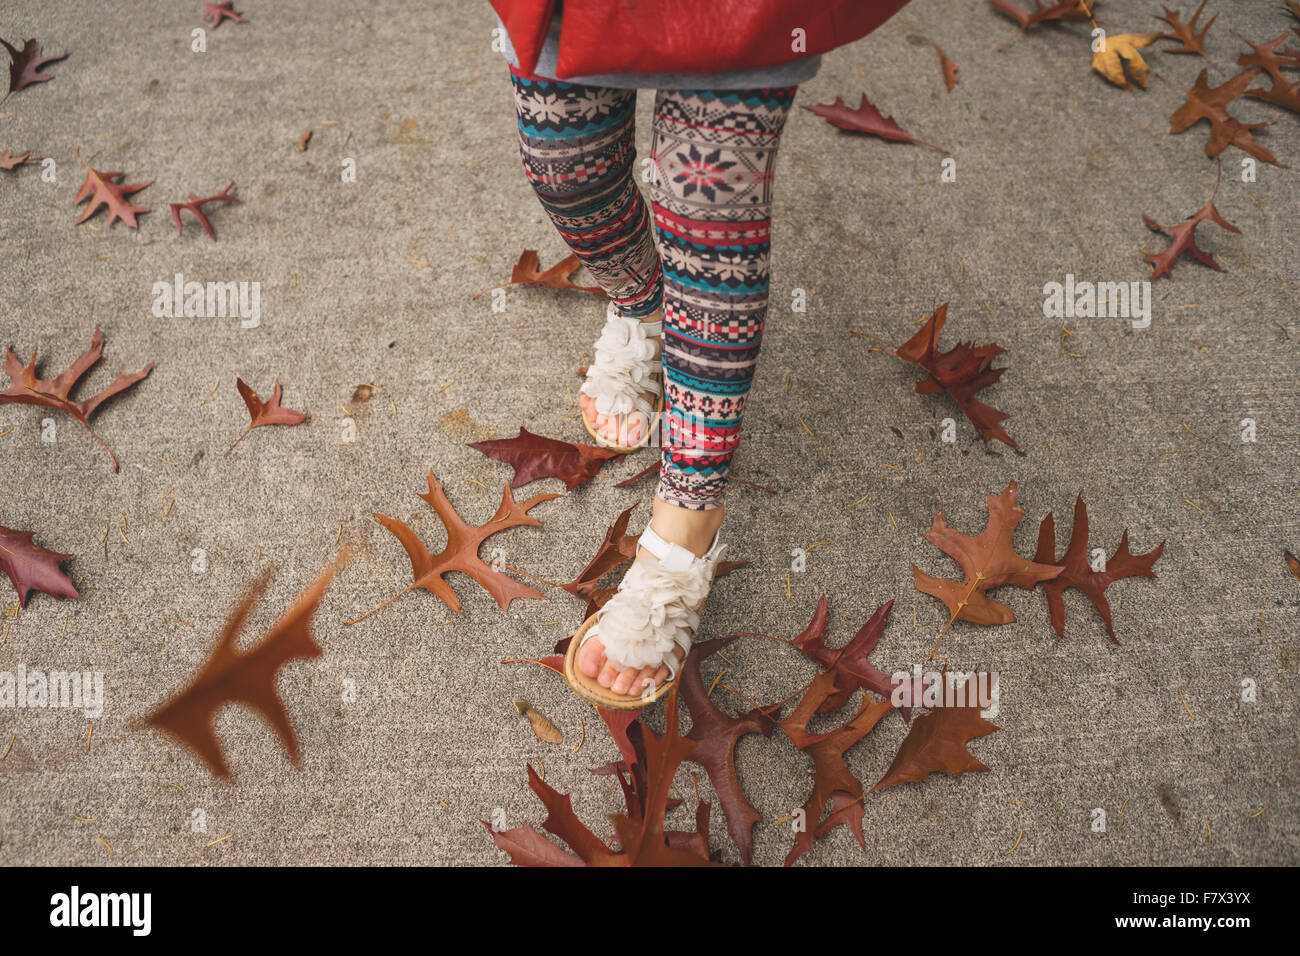 Girl skipping along a path in autumn - Stock Image